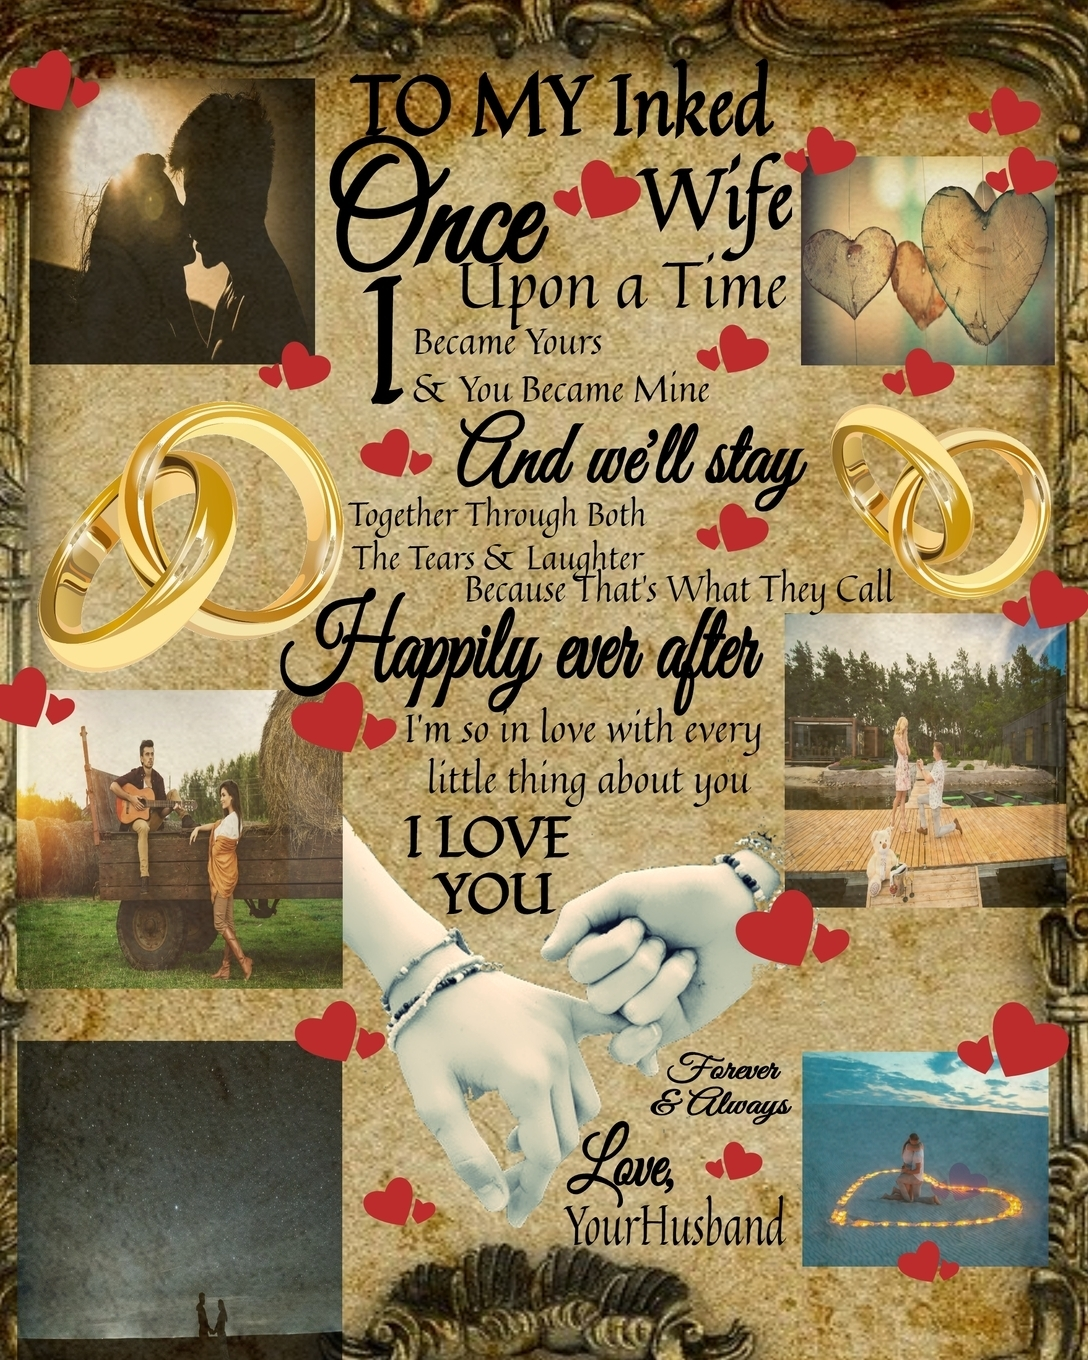 Scarlette Heart. To My Inked Wife Once Upon A Time I Became Yours & You Became Mine And We'll Stay Together Through Both The Tears & Laughter. 14th Anniversary Gifts For Her - Hubbie - Purposeful Journal To Write In Notes About Hubby